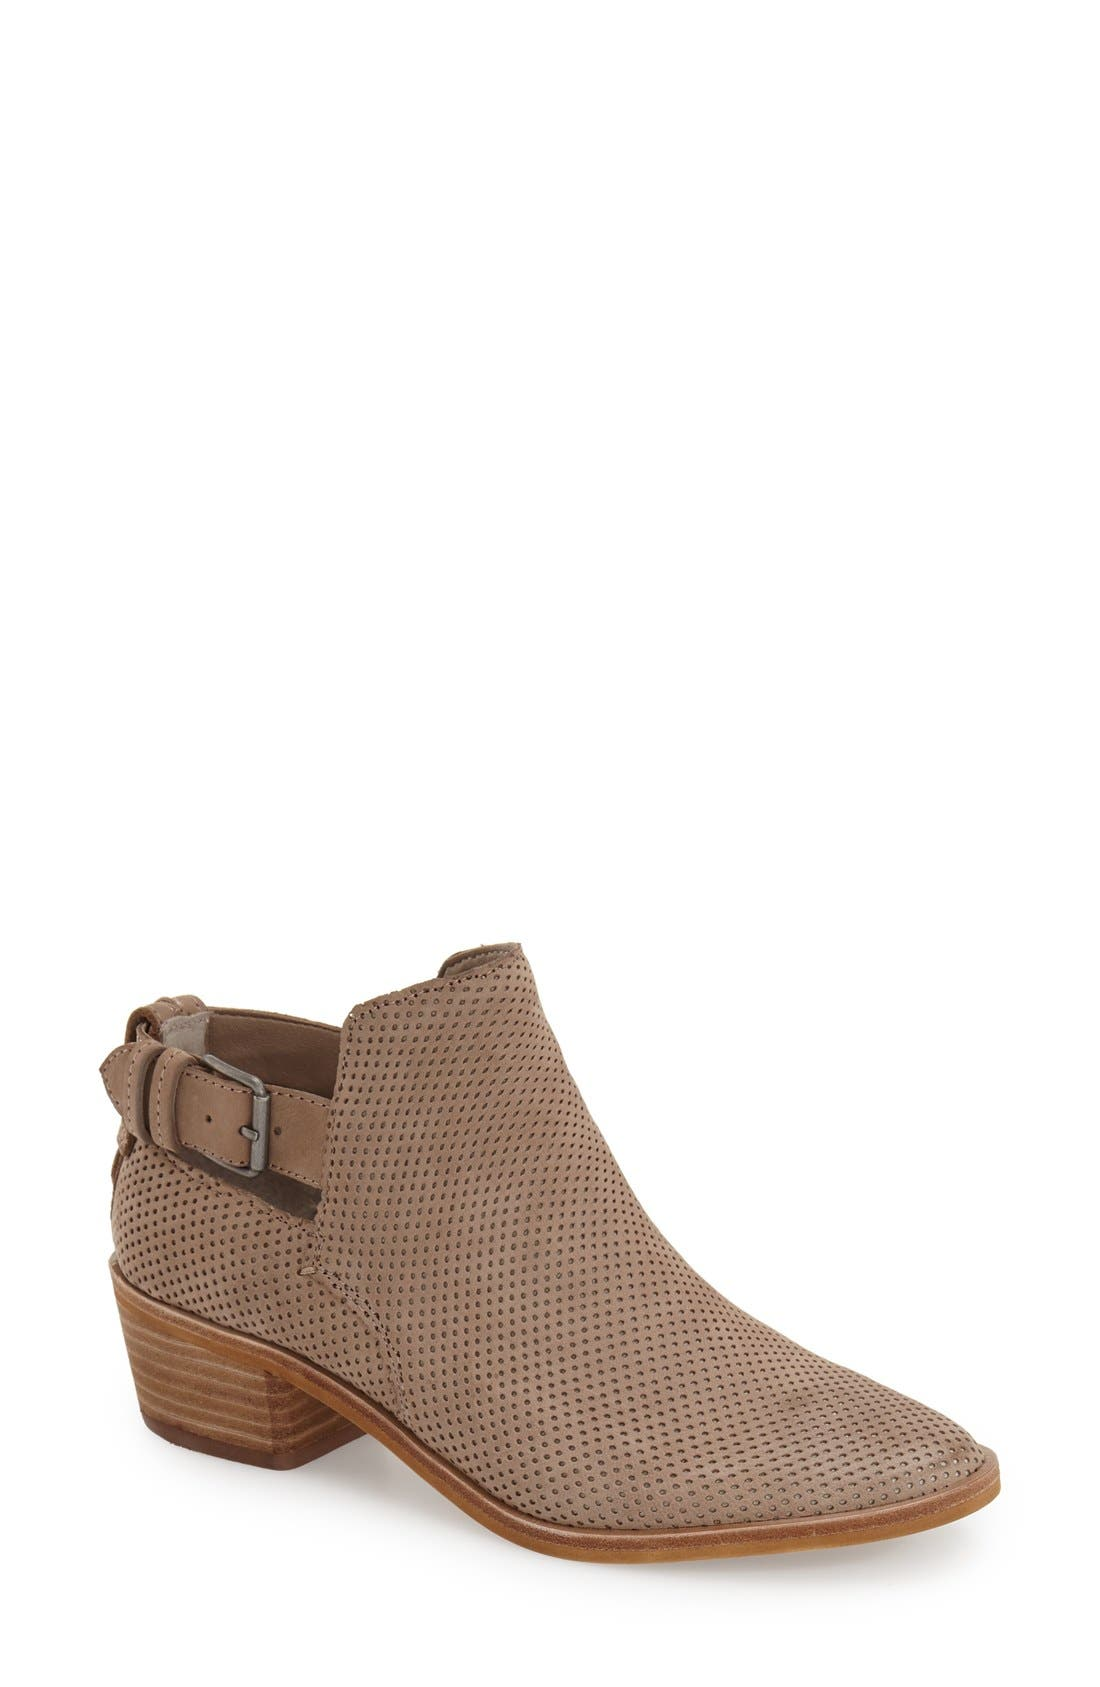 Main Image - Dolce Vita 'Kara' Perforated Bootie (Women)